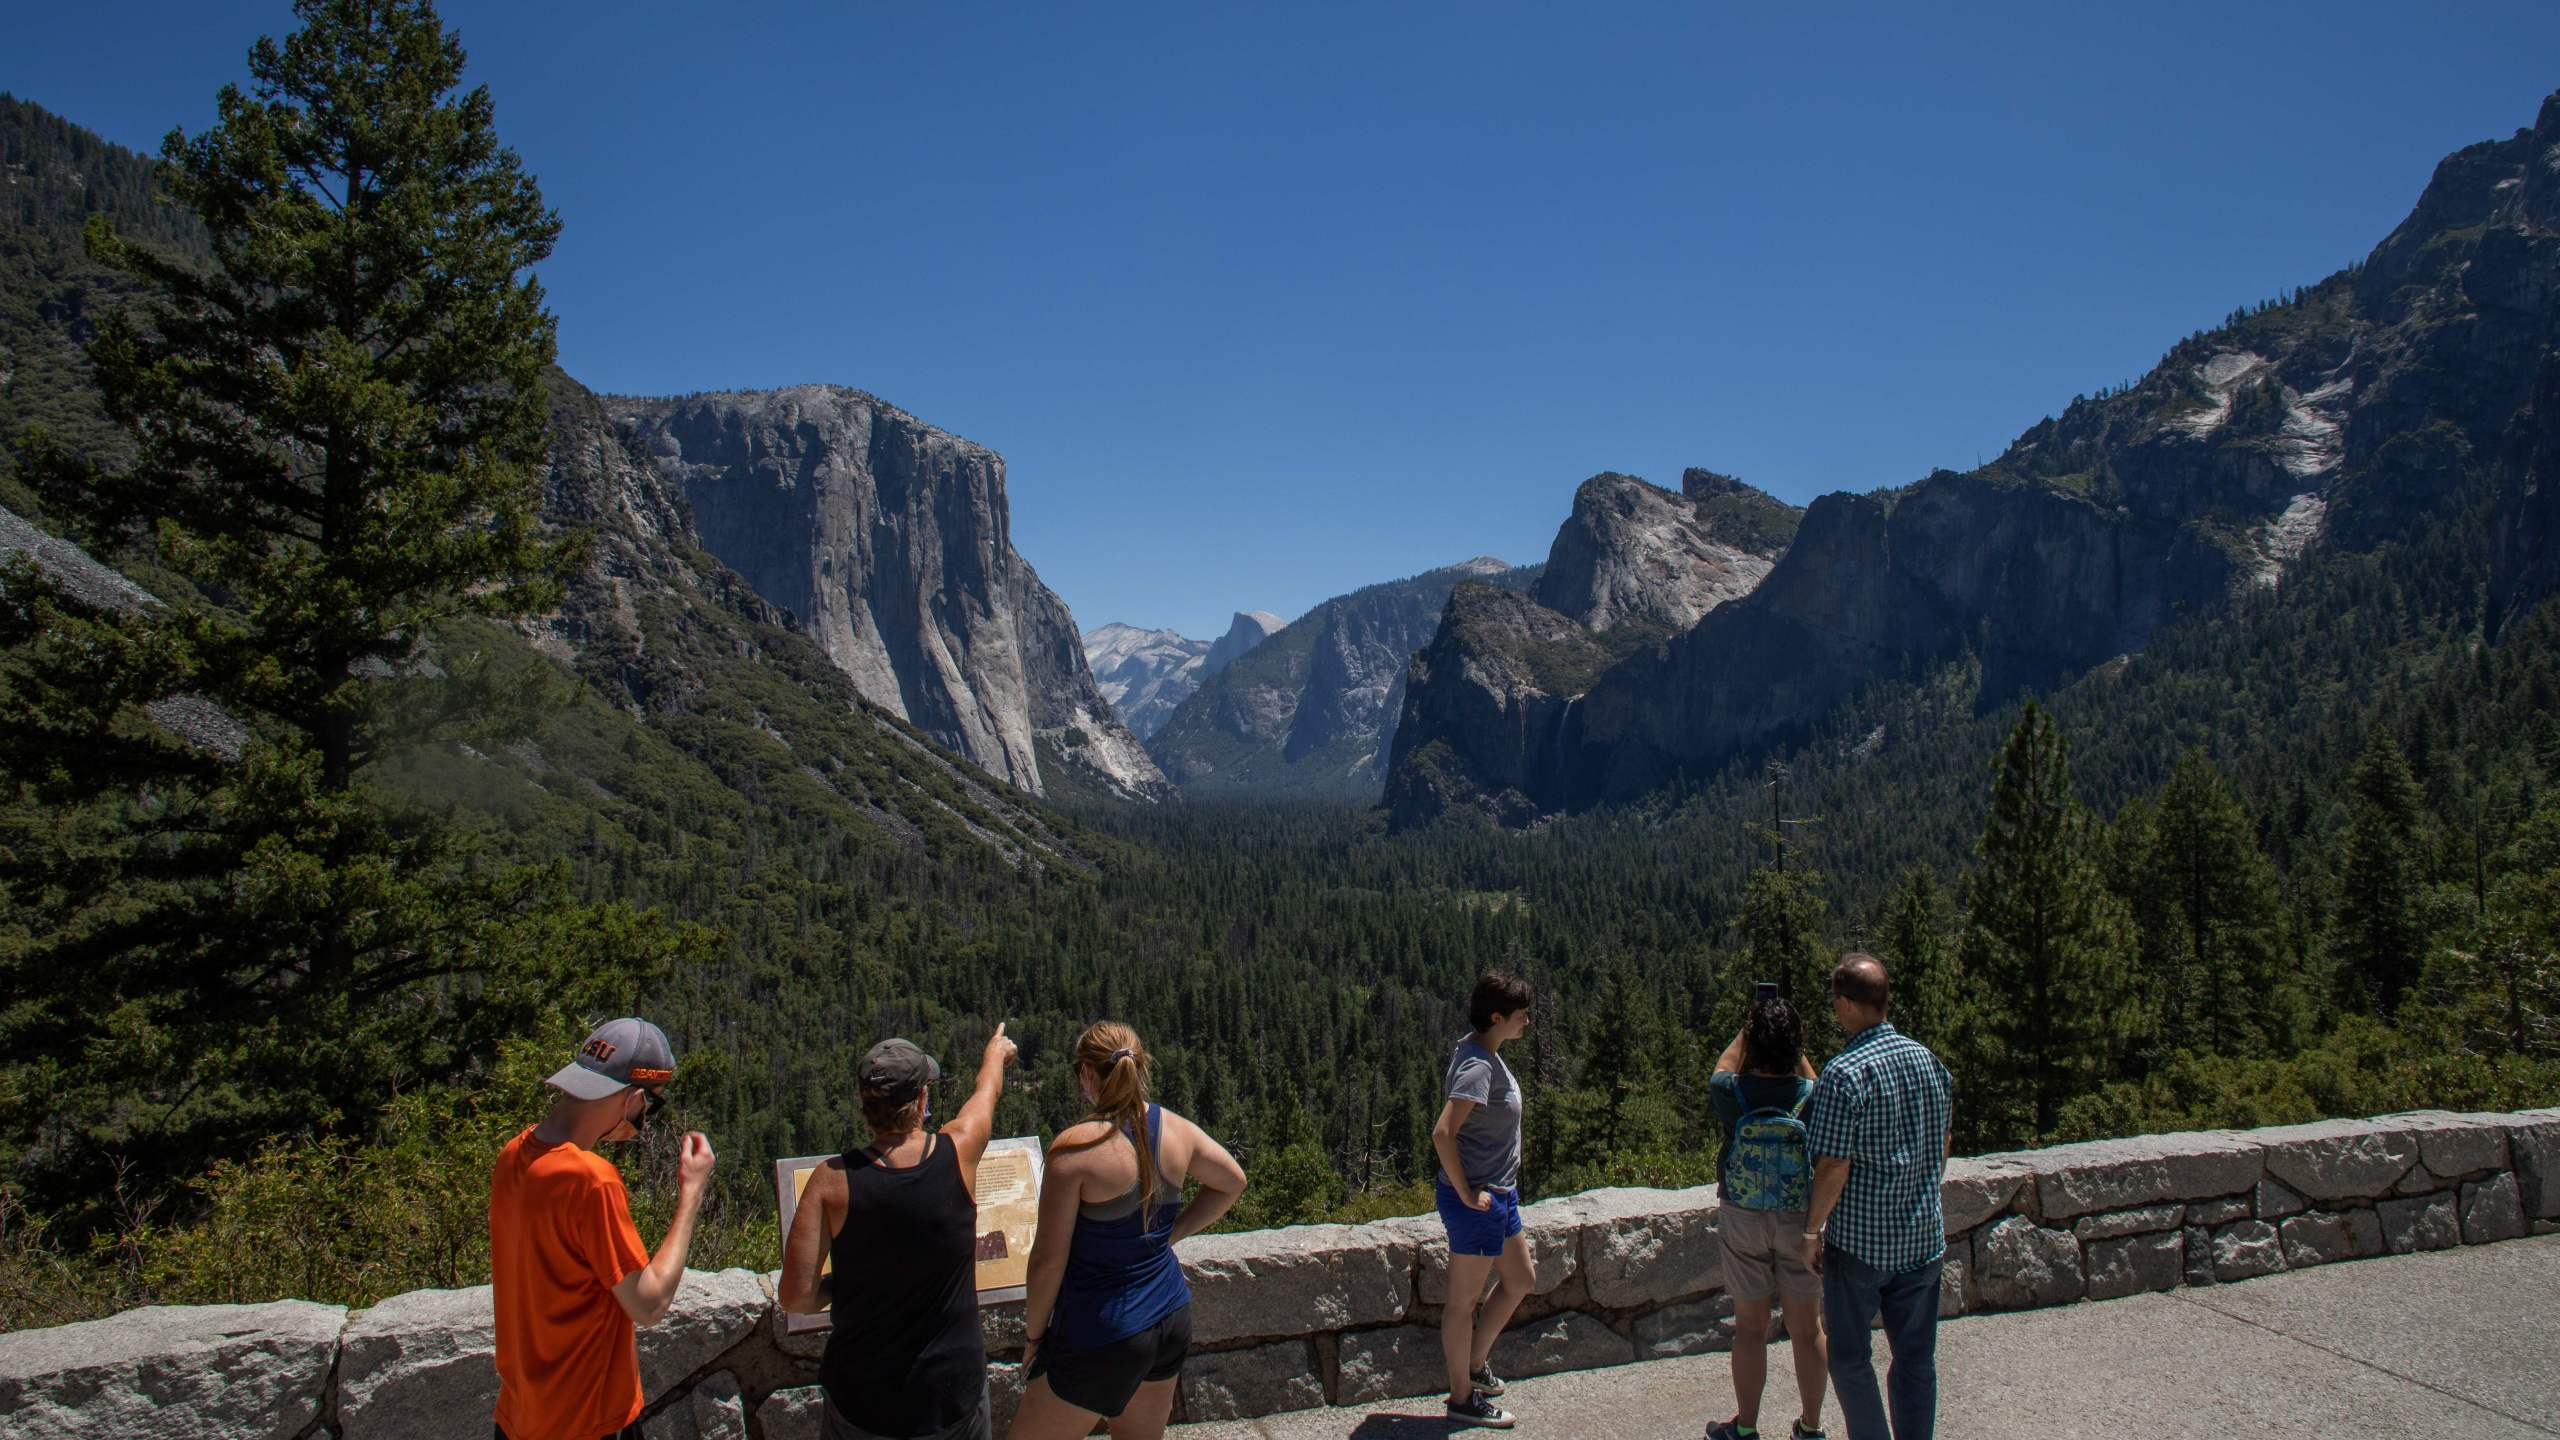 Visitors walk to the Tunnel View lookout in Yosemite Valley at Yosemite National Park, California on July 08, 2020. (Apu Gomes/AFP via Getty Images)